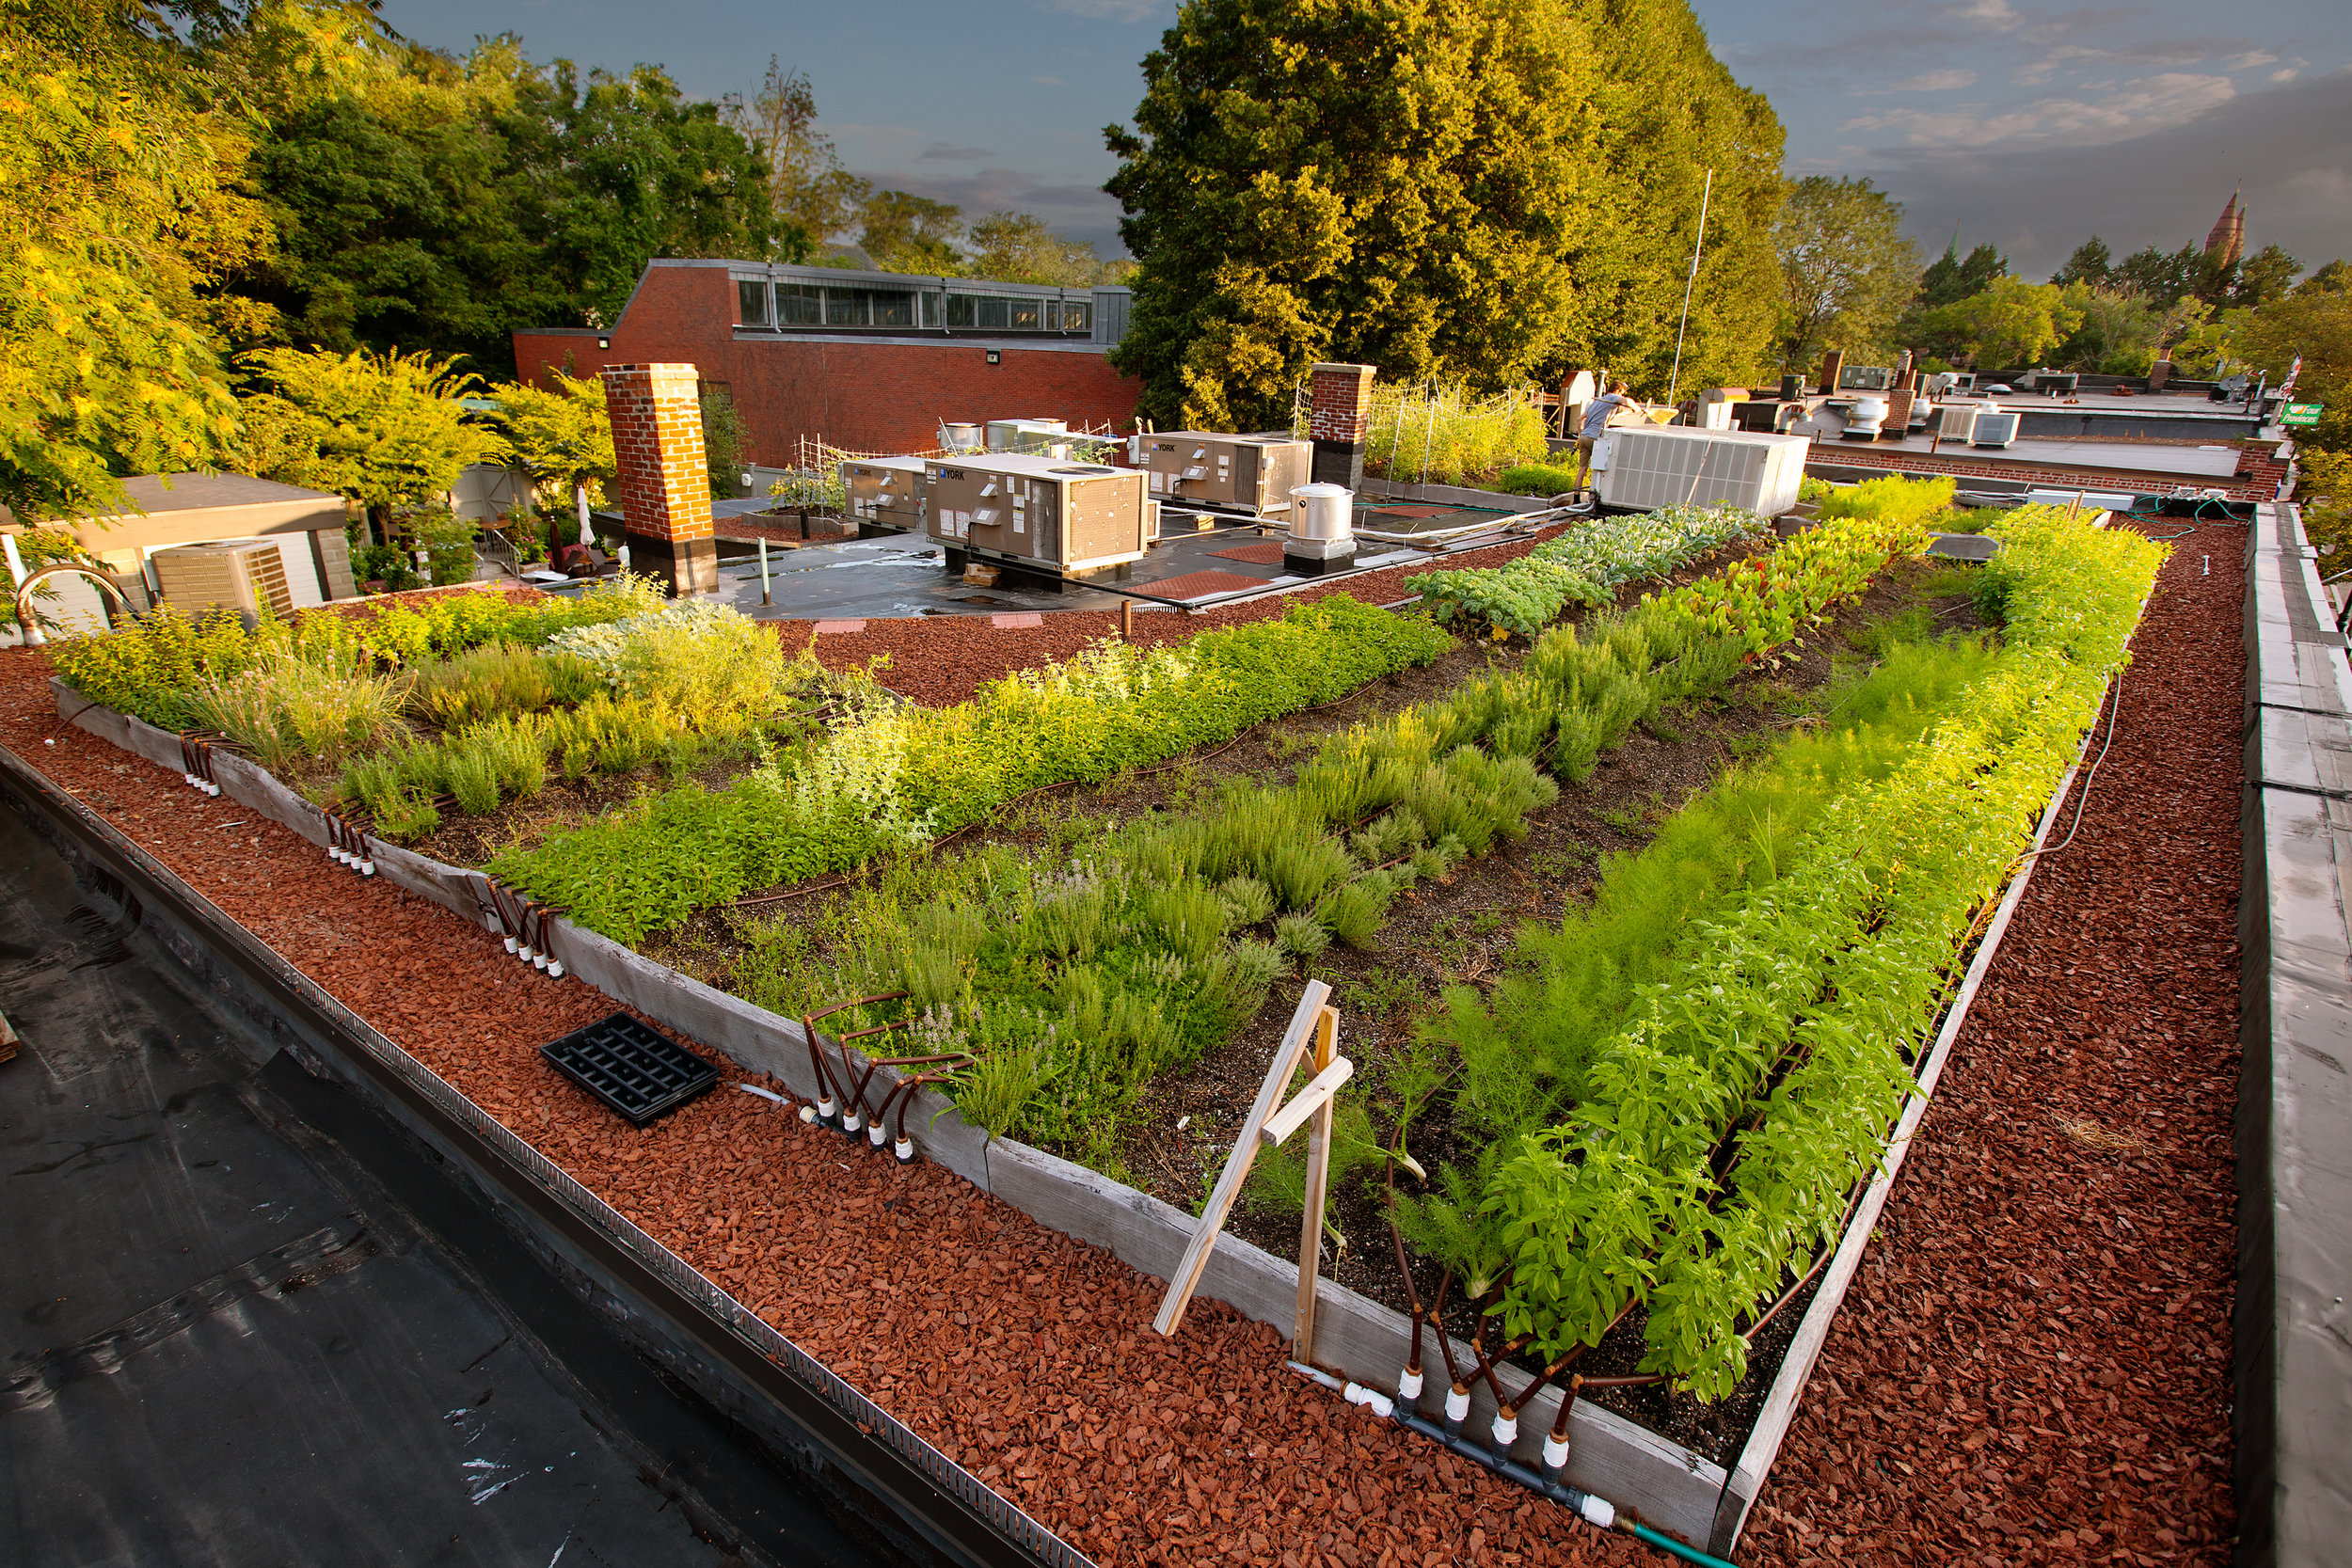 recover-green-roofs-rooftop-farm-ester-ledge-2010-11.jpg